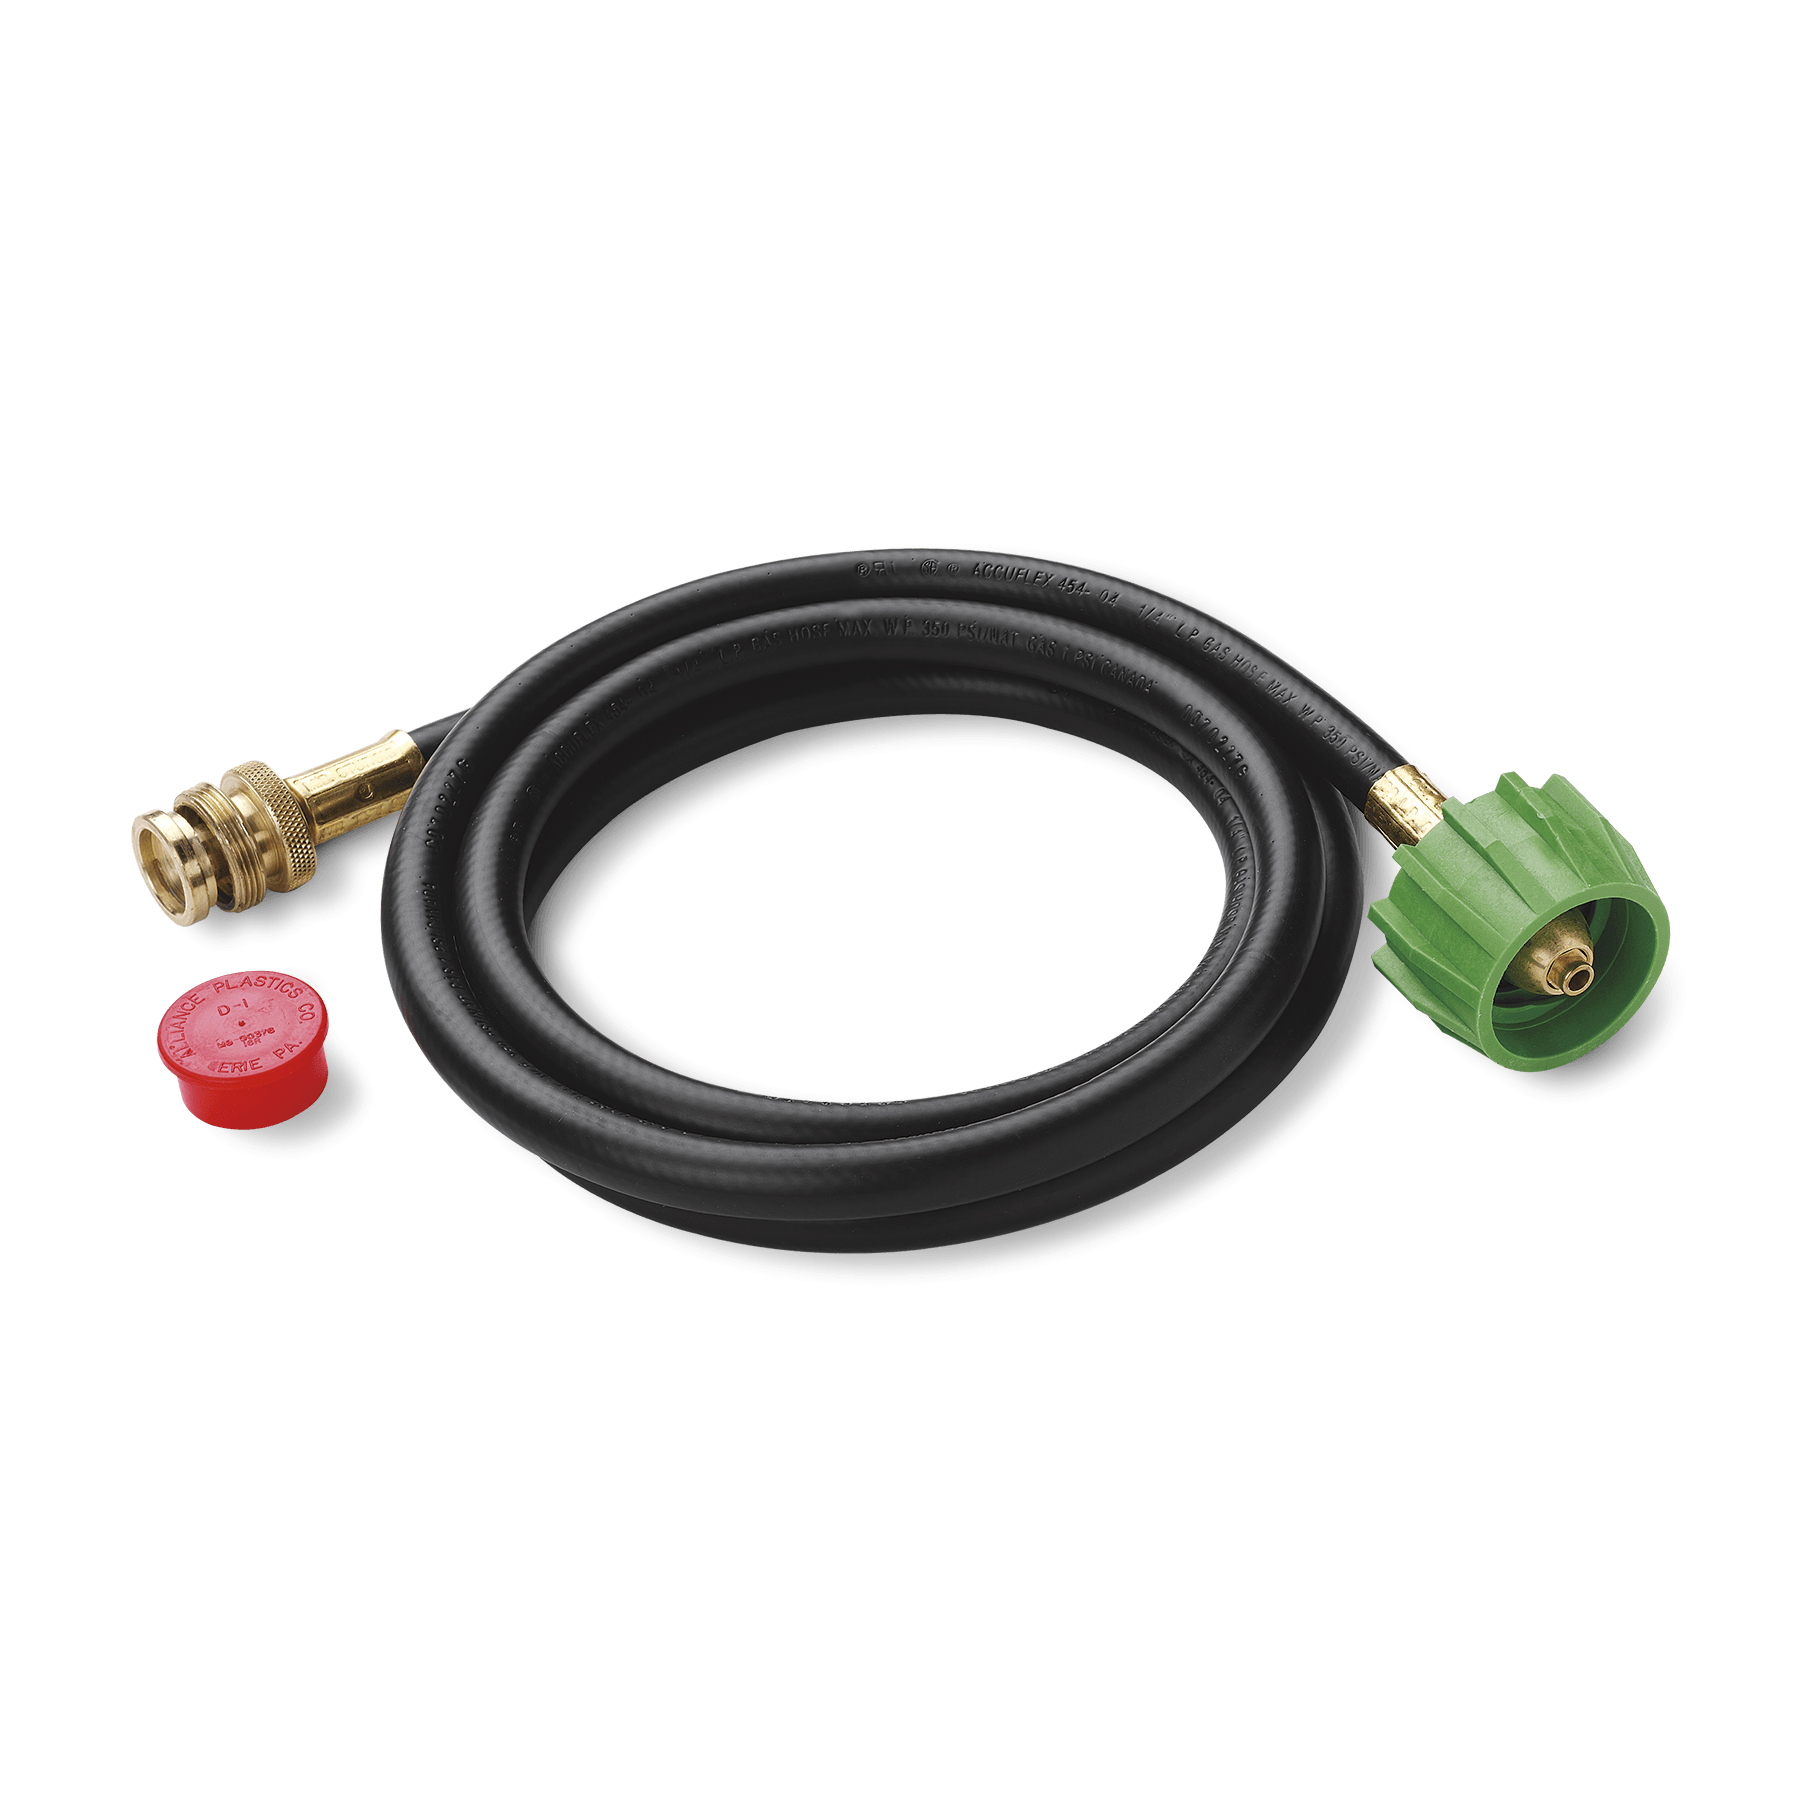 Propane Adapter Hose Tank to Gas BBQ Grill Camping Stove Outdoor Burner